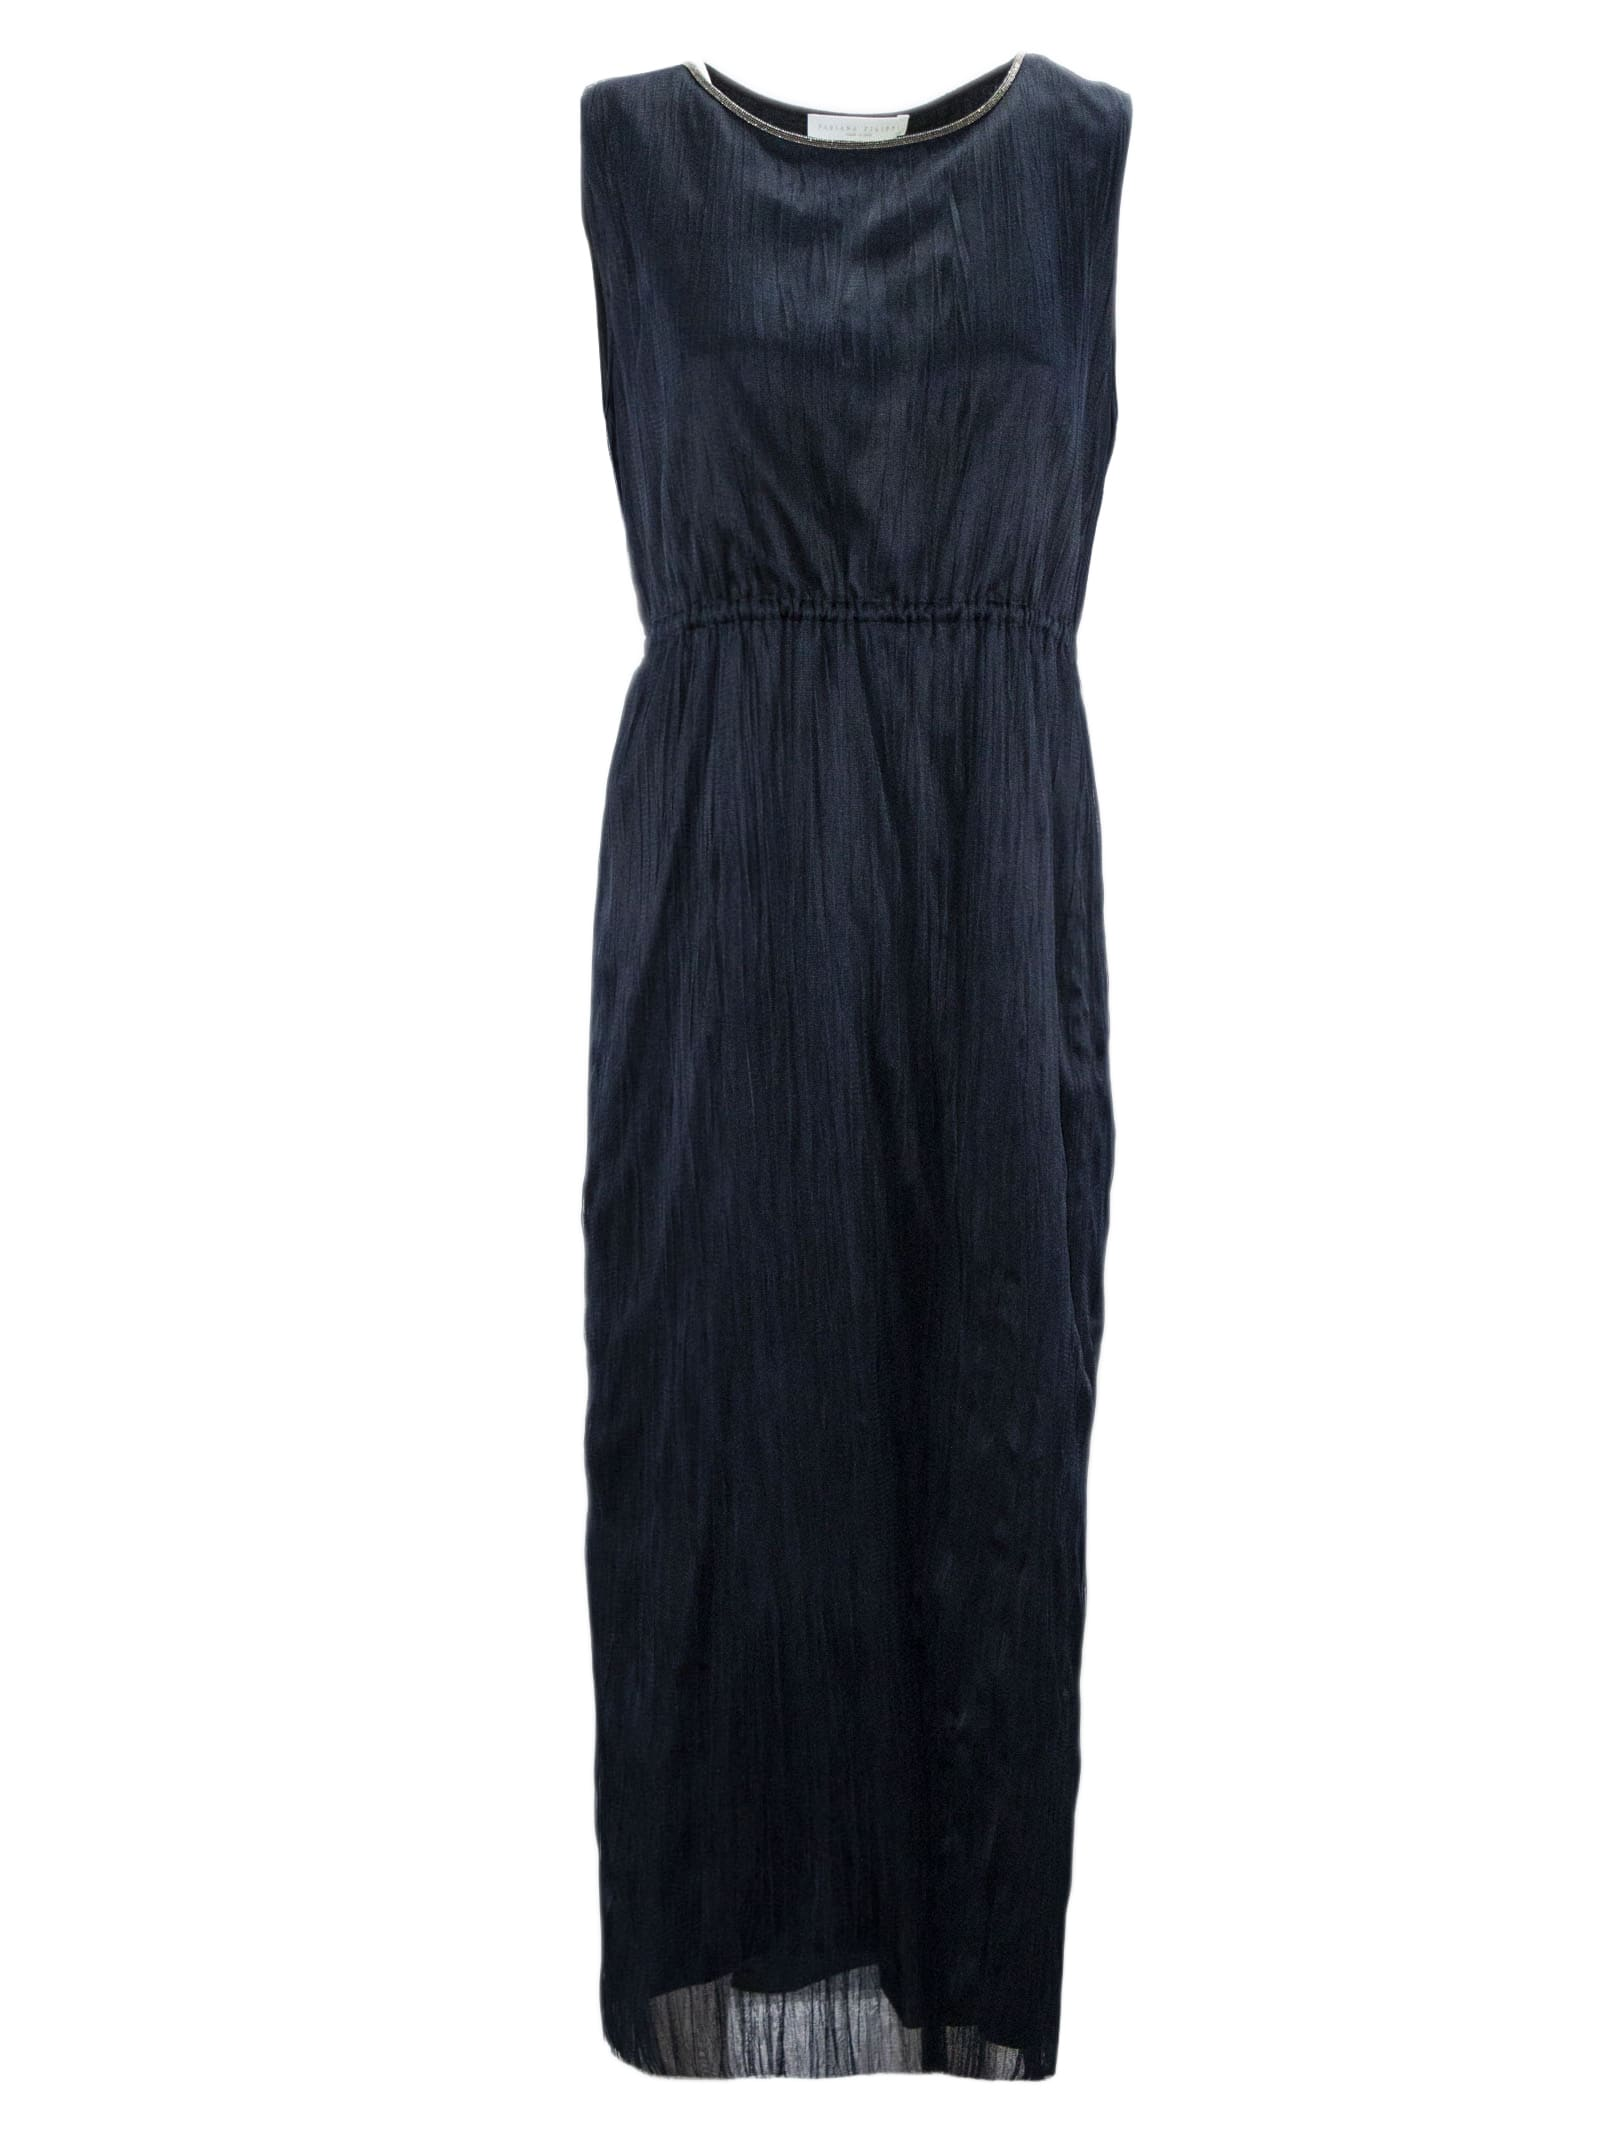 Fabiana Filippi Blue Fabric Dress